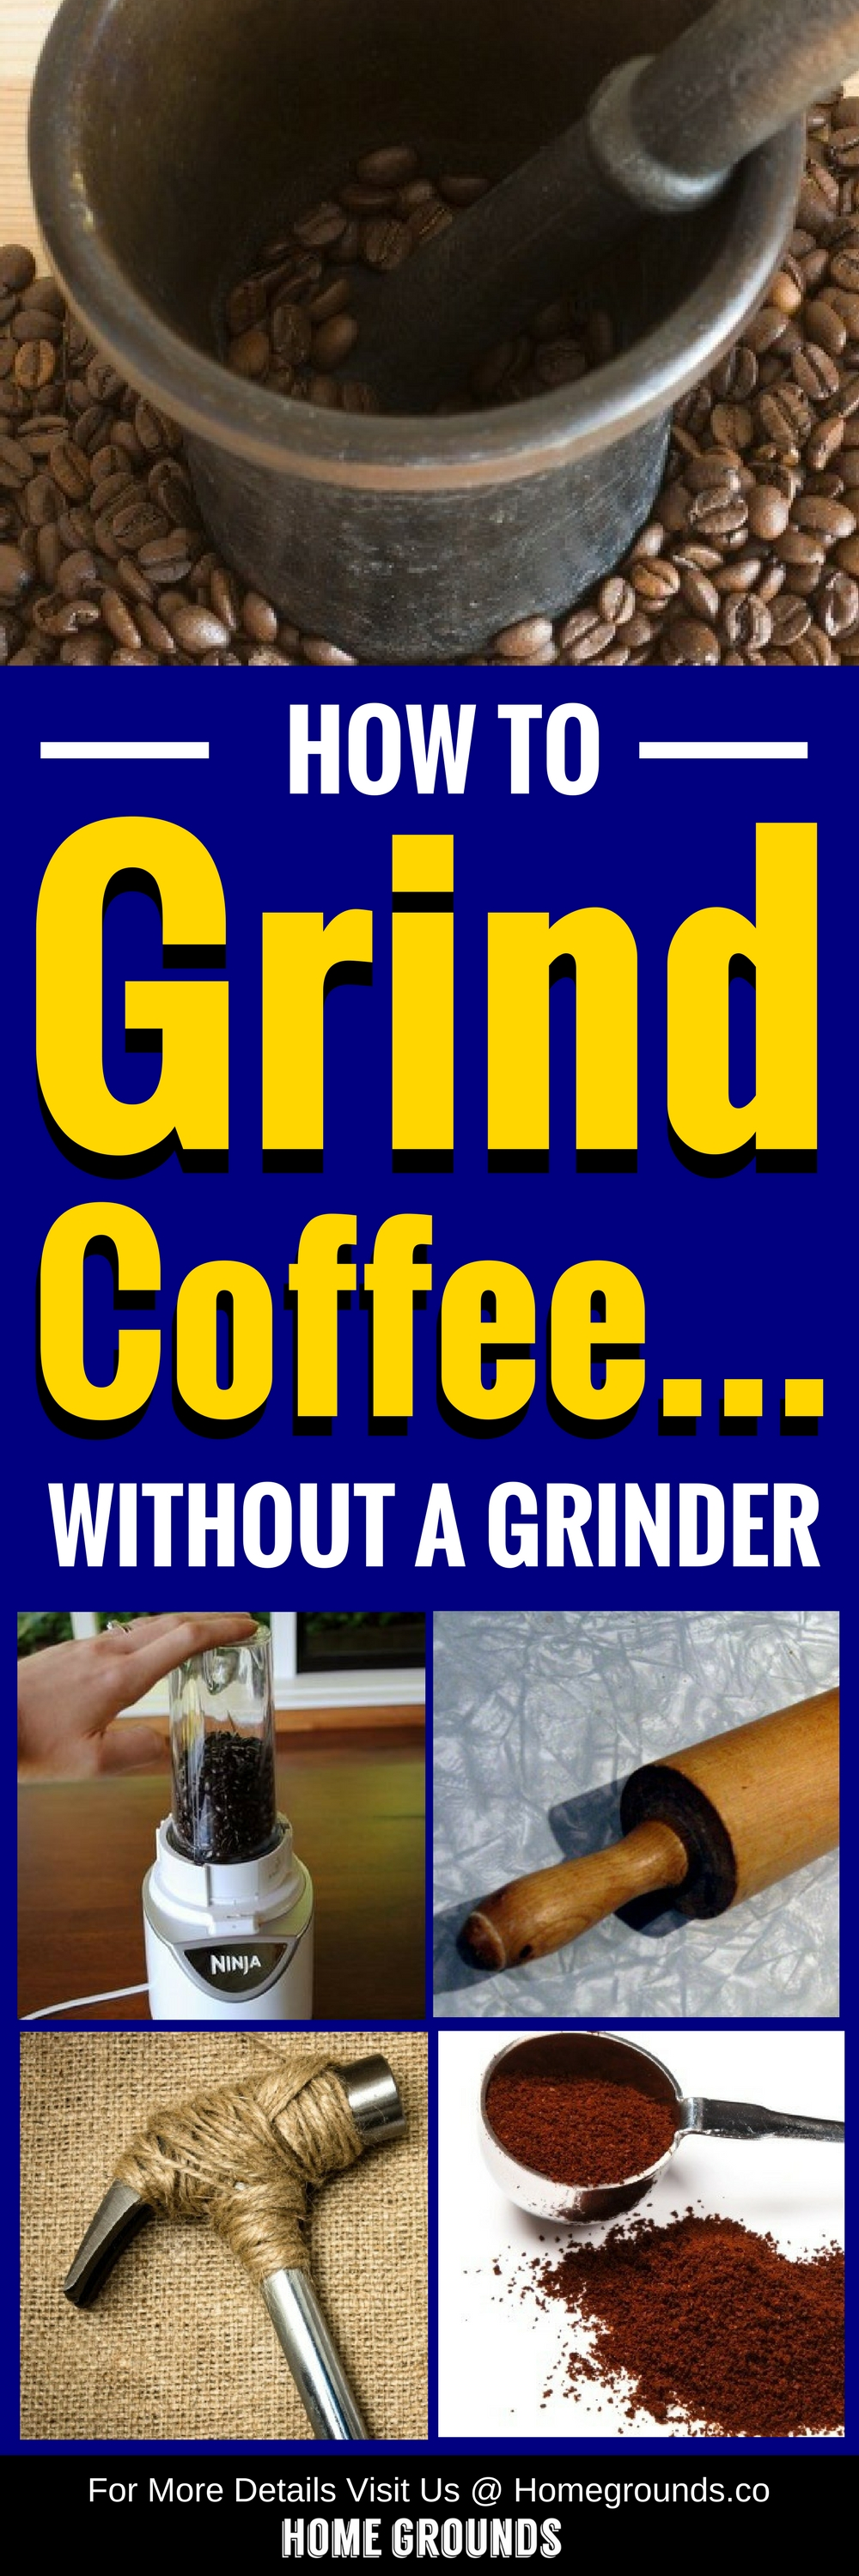 6 Simple Ways to Grind Coffee Without a Grinder How to